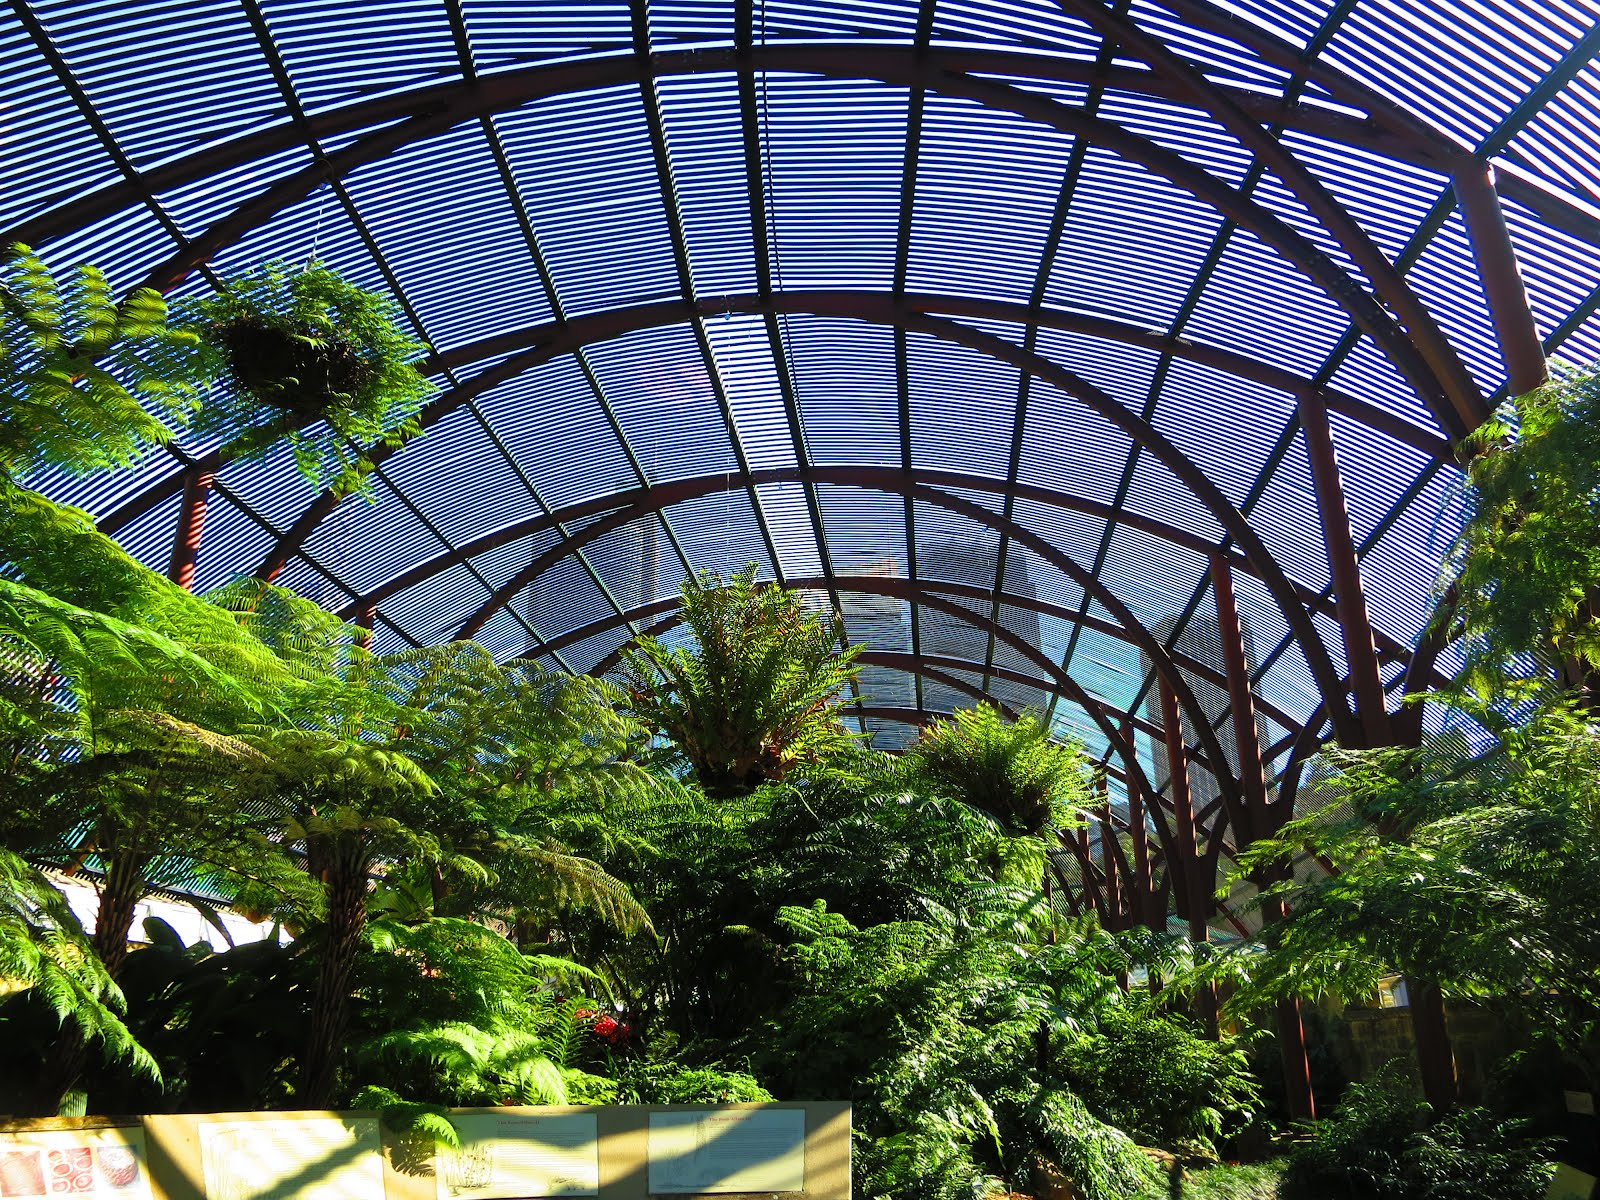 The Fernery Royal Botanic Gardens